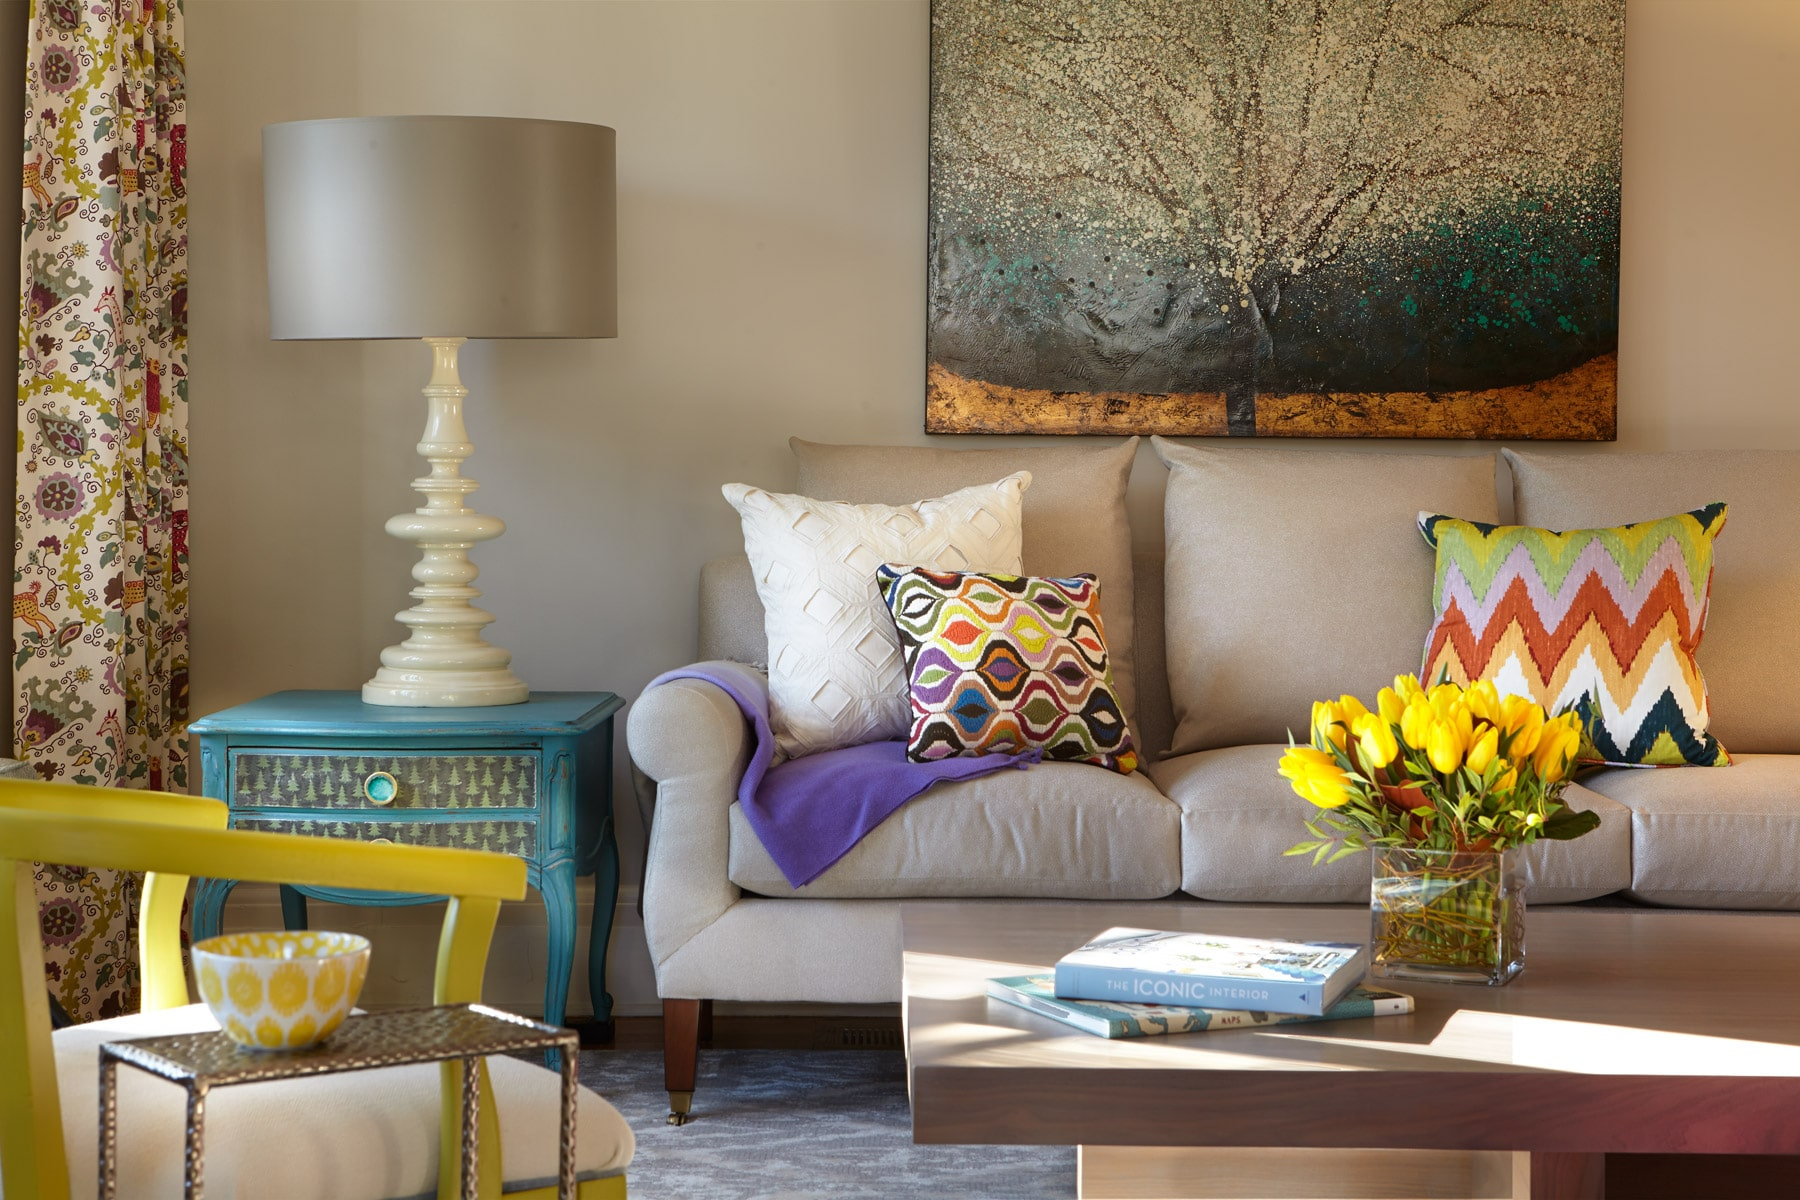 Eclectic-Renovated-Home-Living-Room-Sofa-Minneapolis-interior-designer.jpg